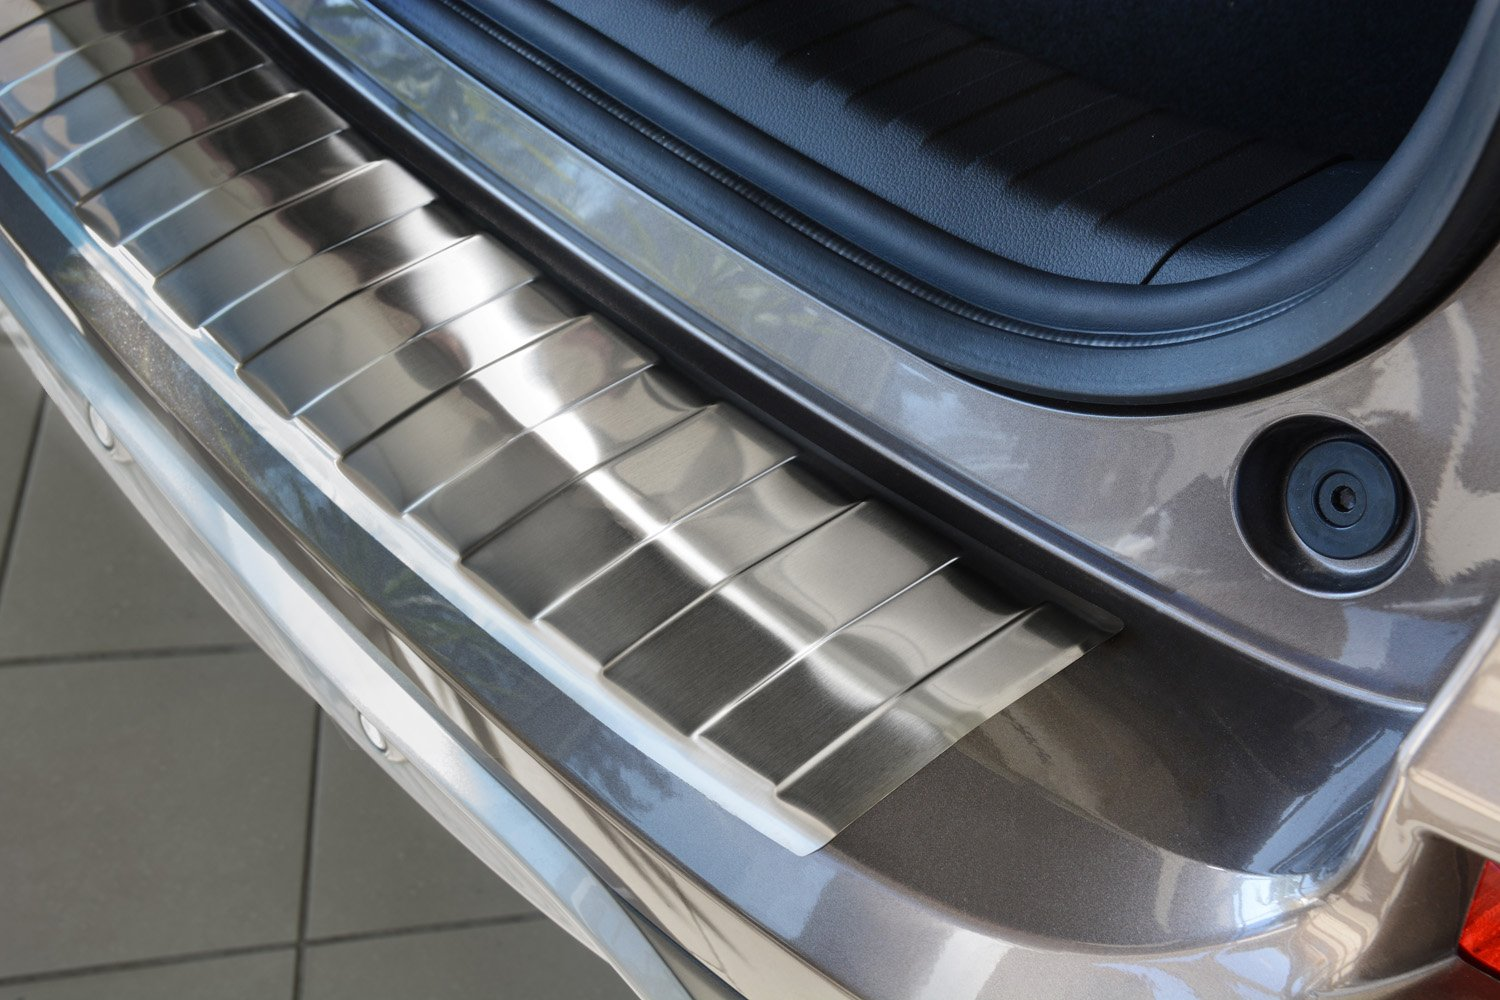 2015 2017 Honda Cr V Crv Stainless Steel Rear Bumper Step Cover Mobilio Protector Guard Automotive